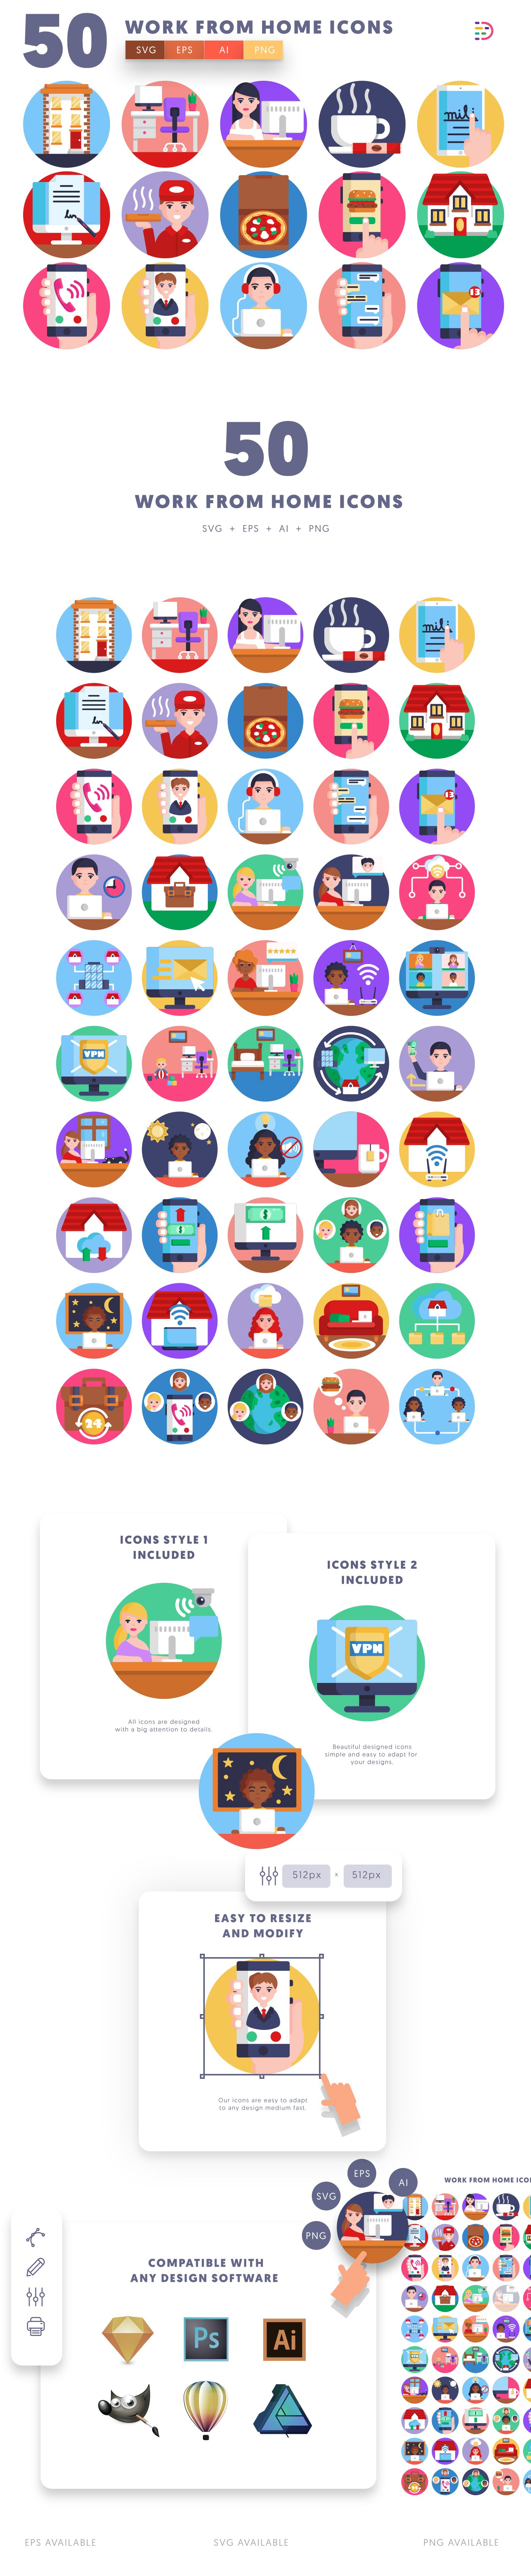 Work from Home icons info graphic